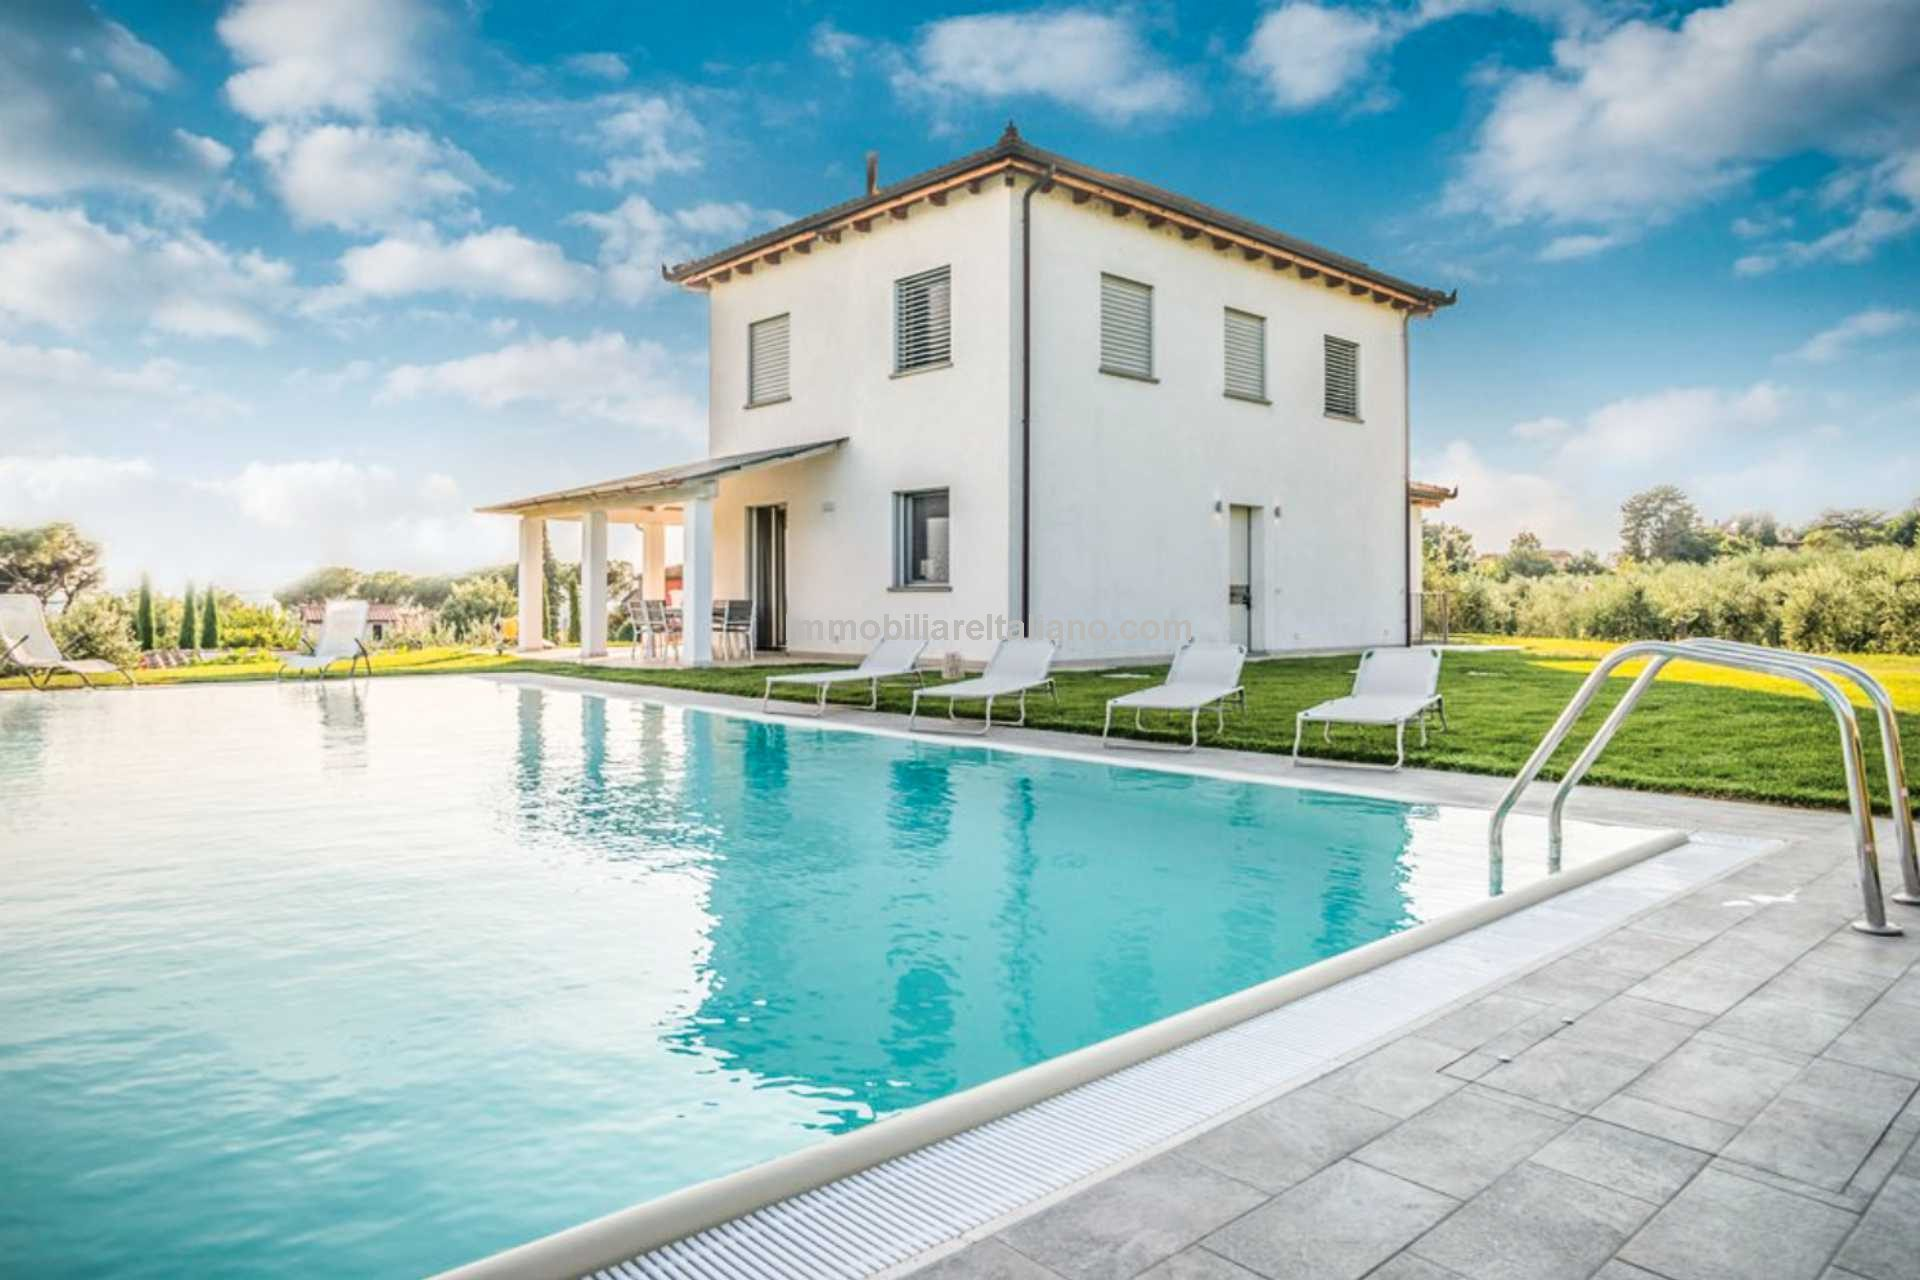 Recently built villa with pool.